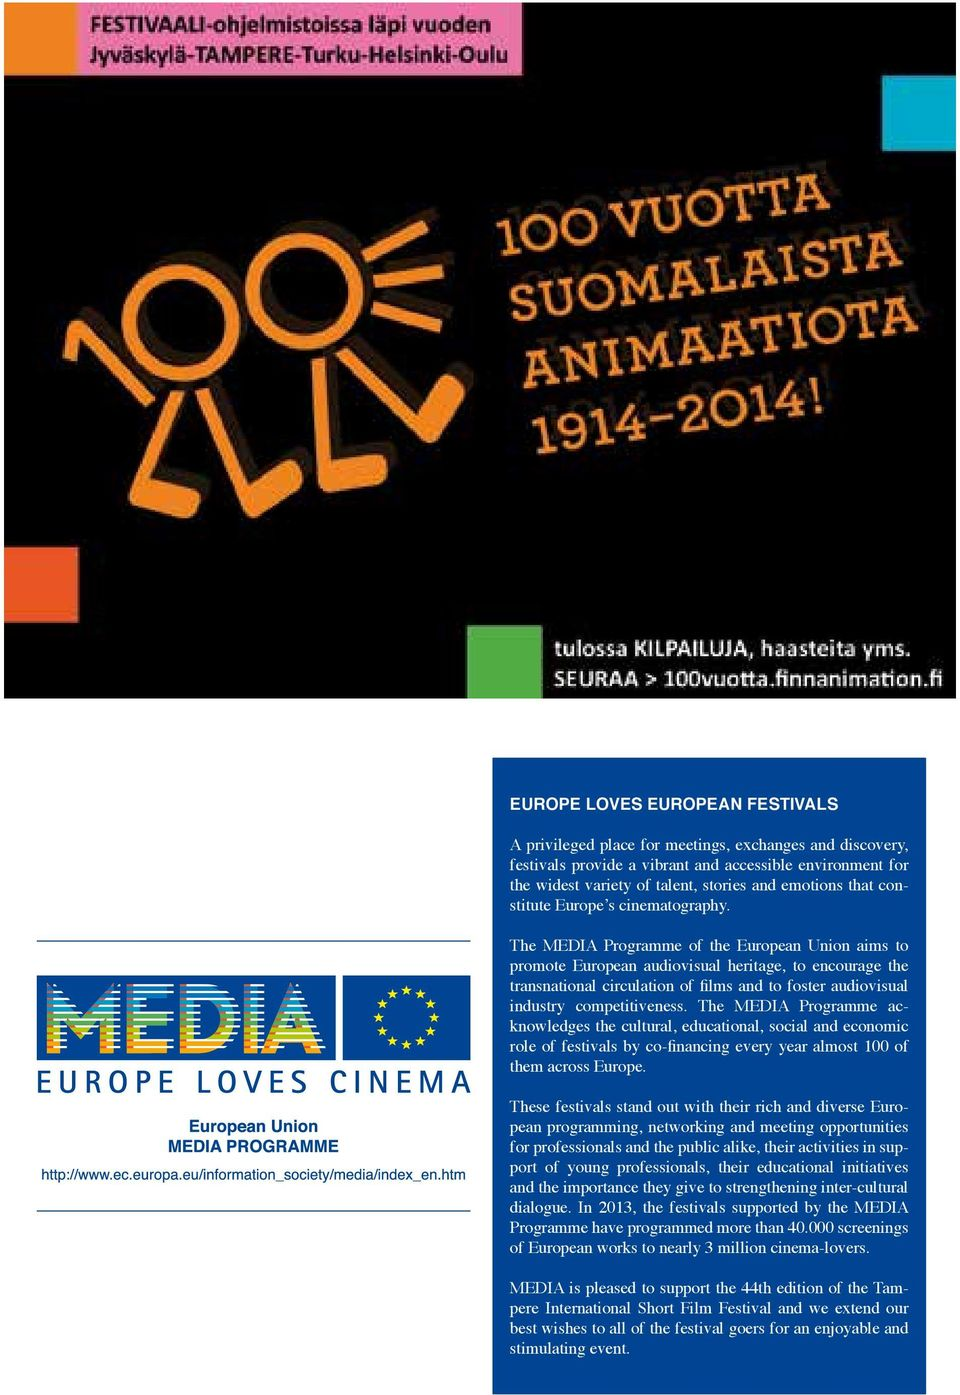 The MEDIA Programme of the European Union aims to promote European audiovisual heritage, to encourage the transnational circulation of films and to foster audiovisual industry competitiveness.